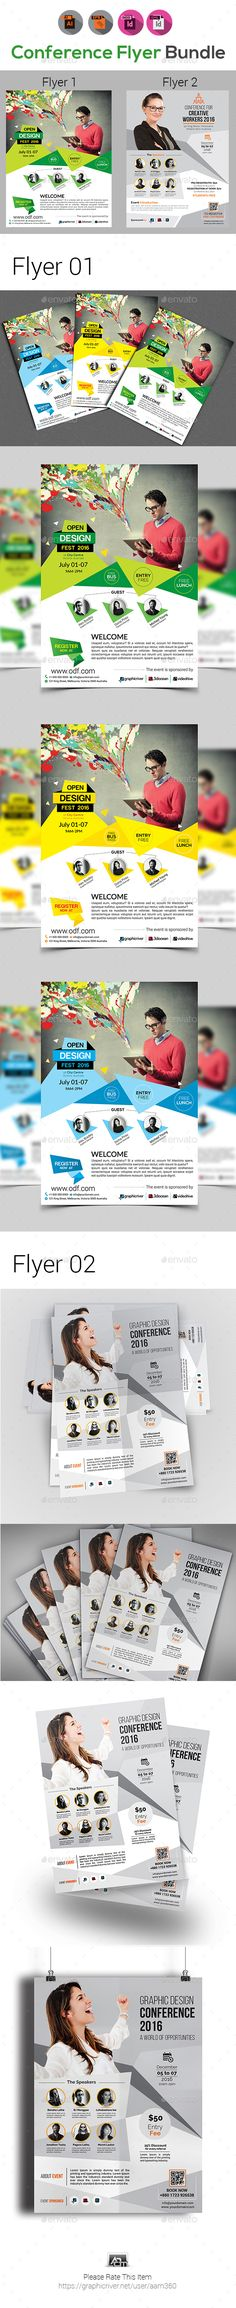 Corporate Flyer Flyer Template Ai Illustrator And Business Flyers